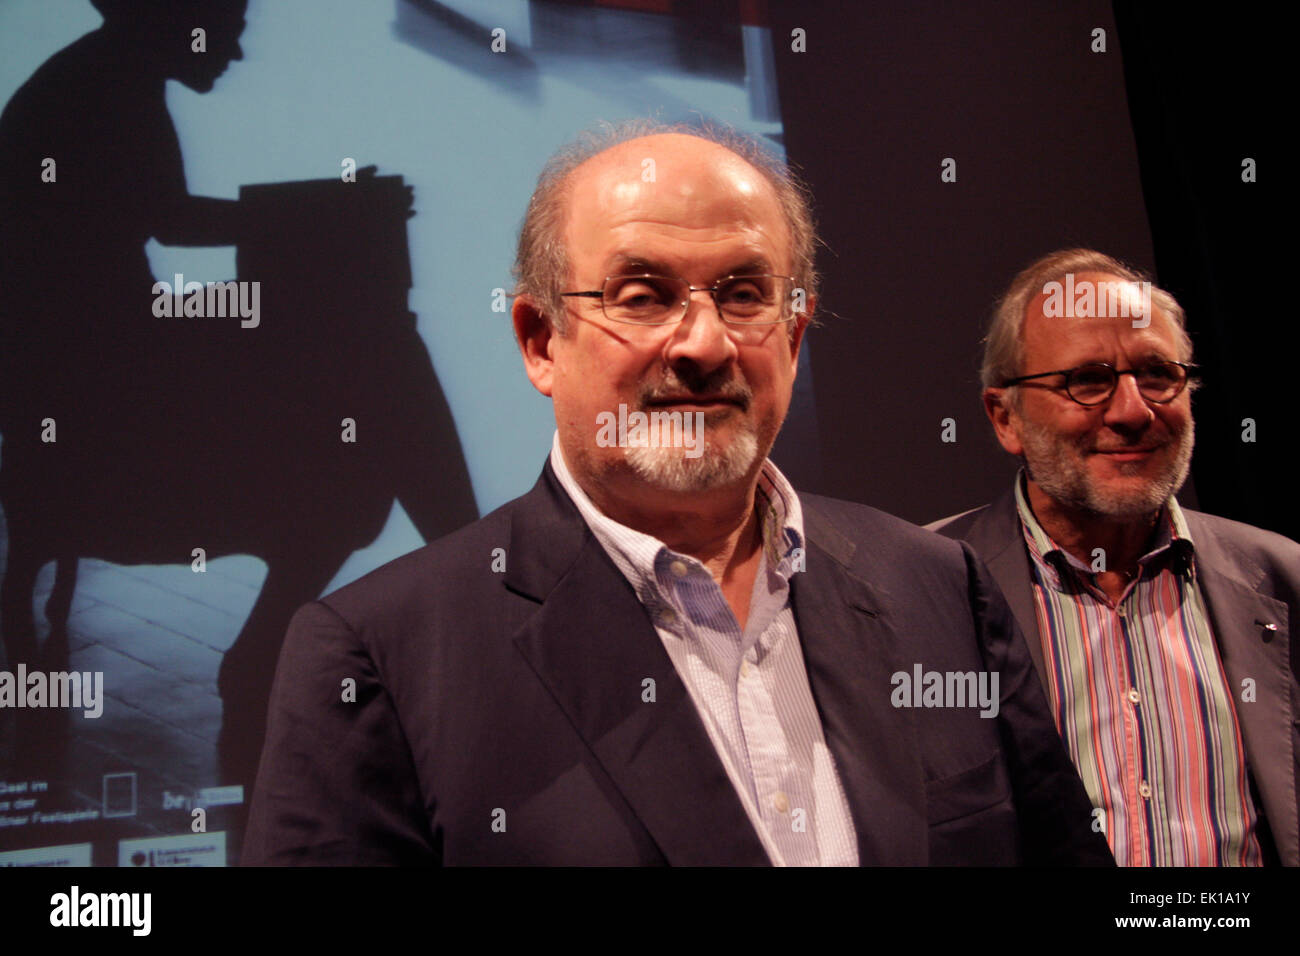 SEPTEMBER 14, 2013 - BERLIN: writer Salman Rushdie, Ulrich Schreiber at a press conference at the International - Stock Image